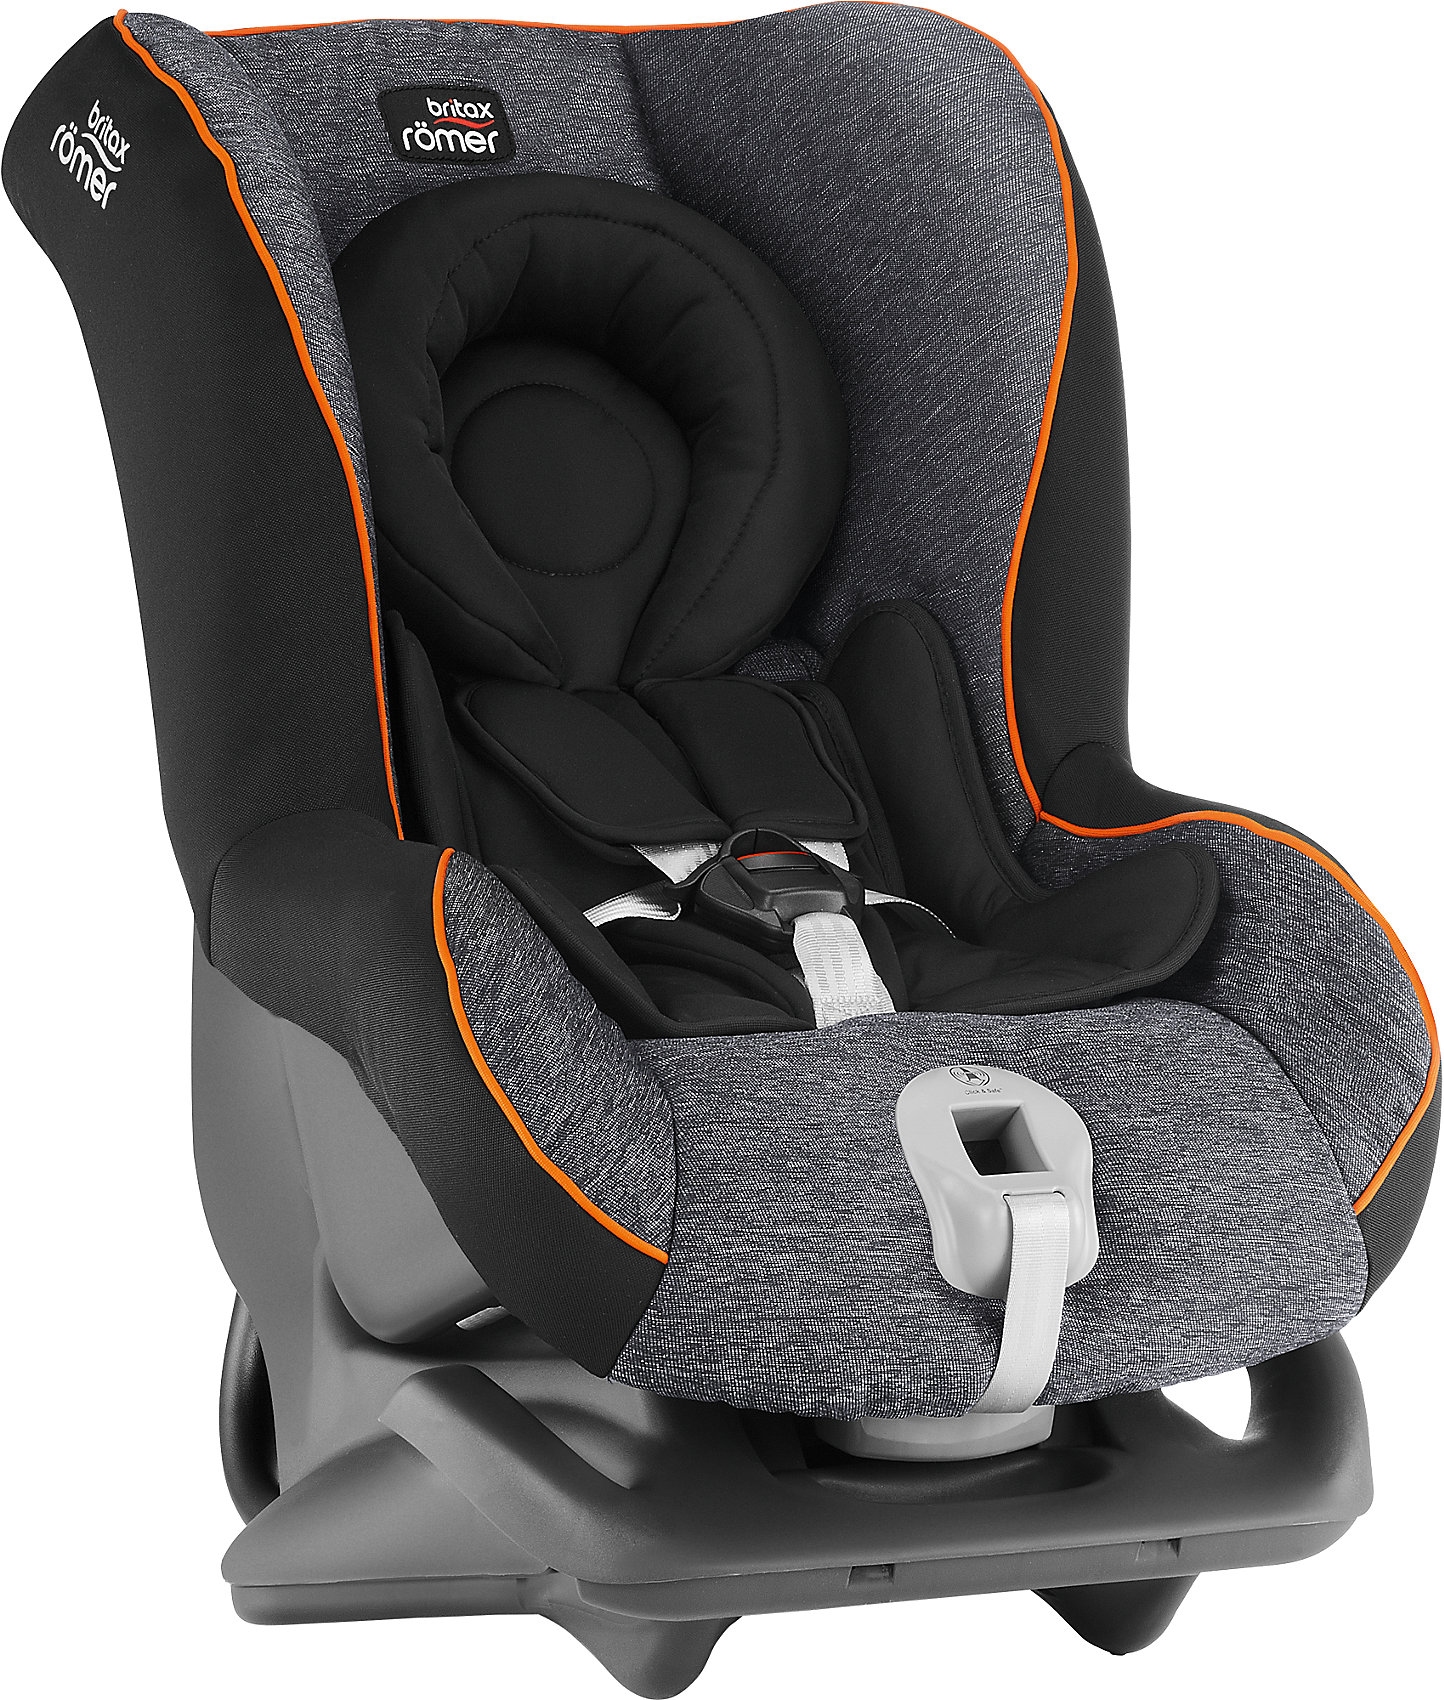 Black Marble 6575611 Neu Britax Römer Auto-Kindersitz First Class Plus